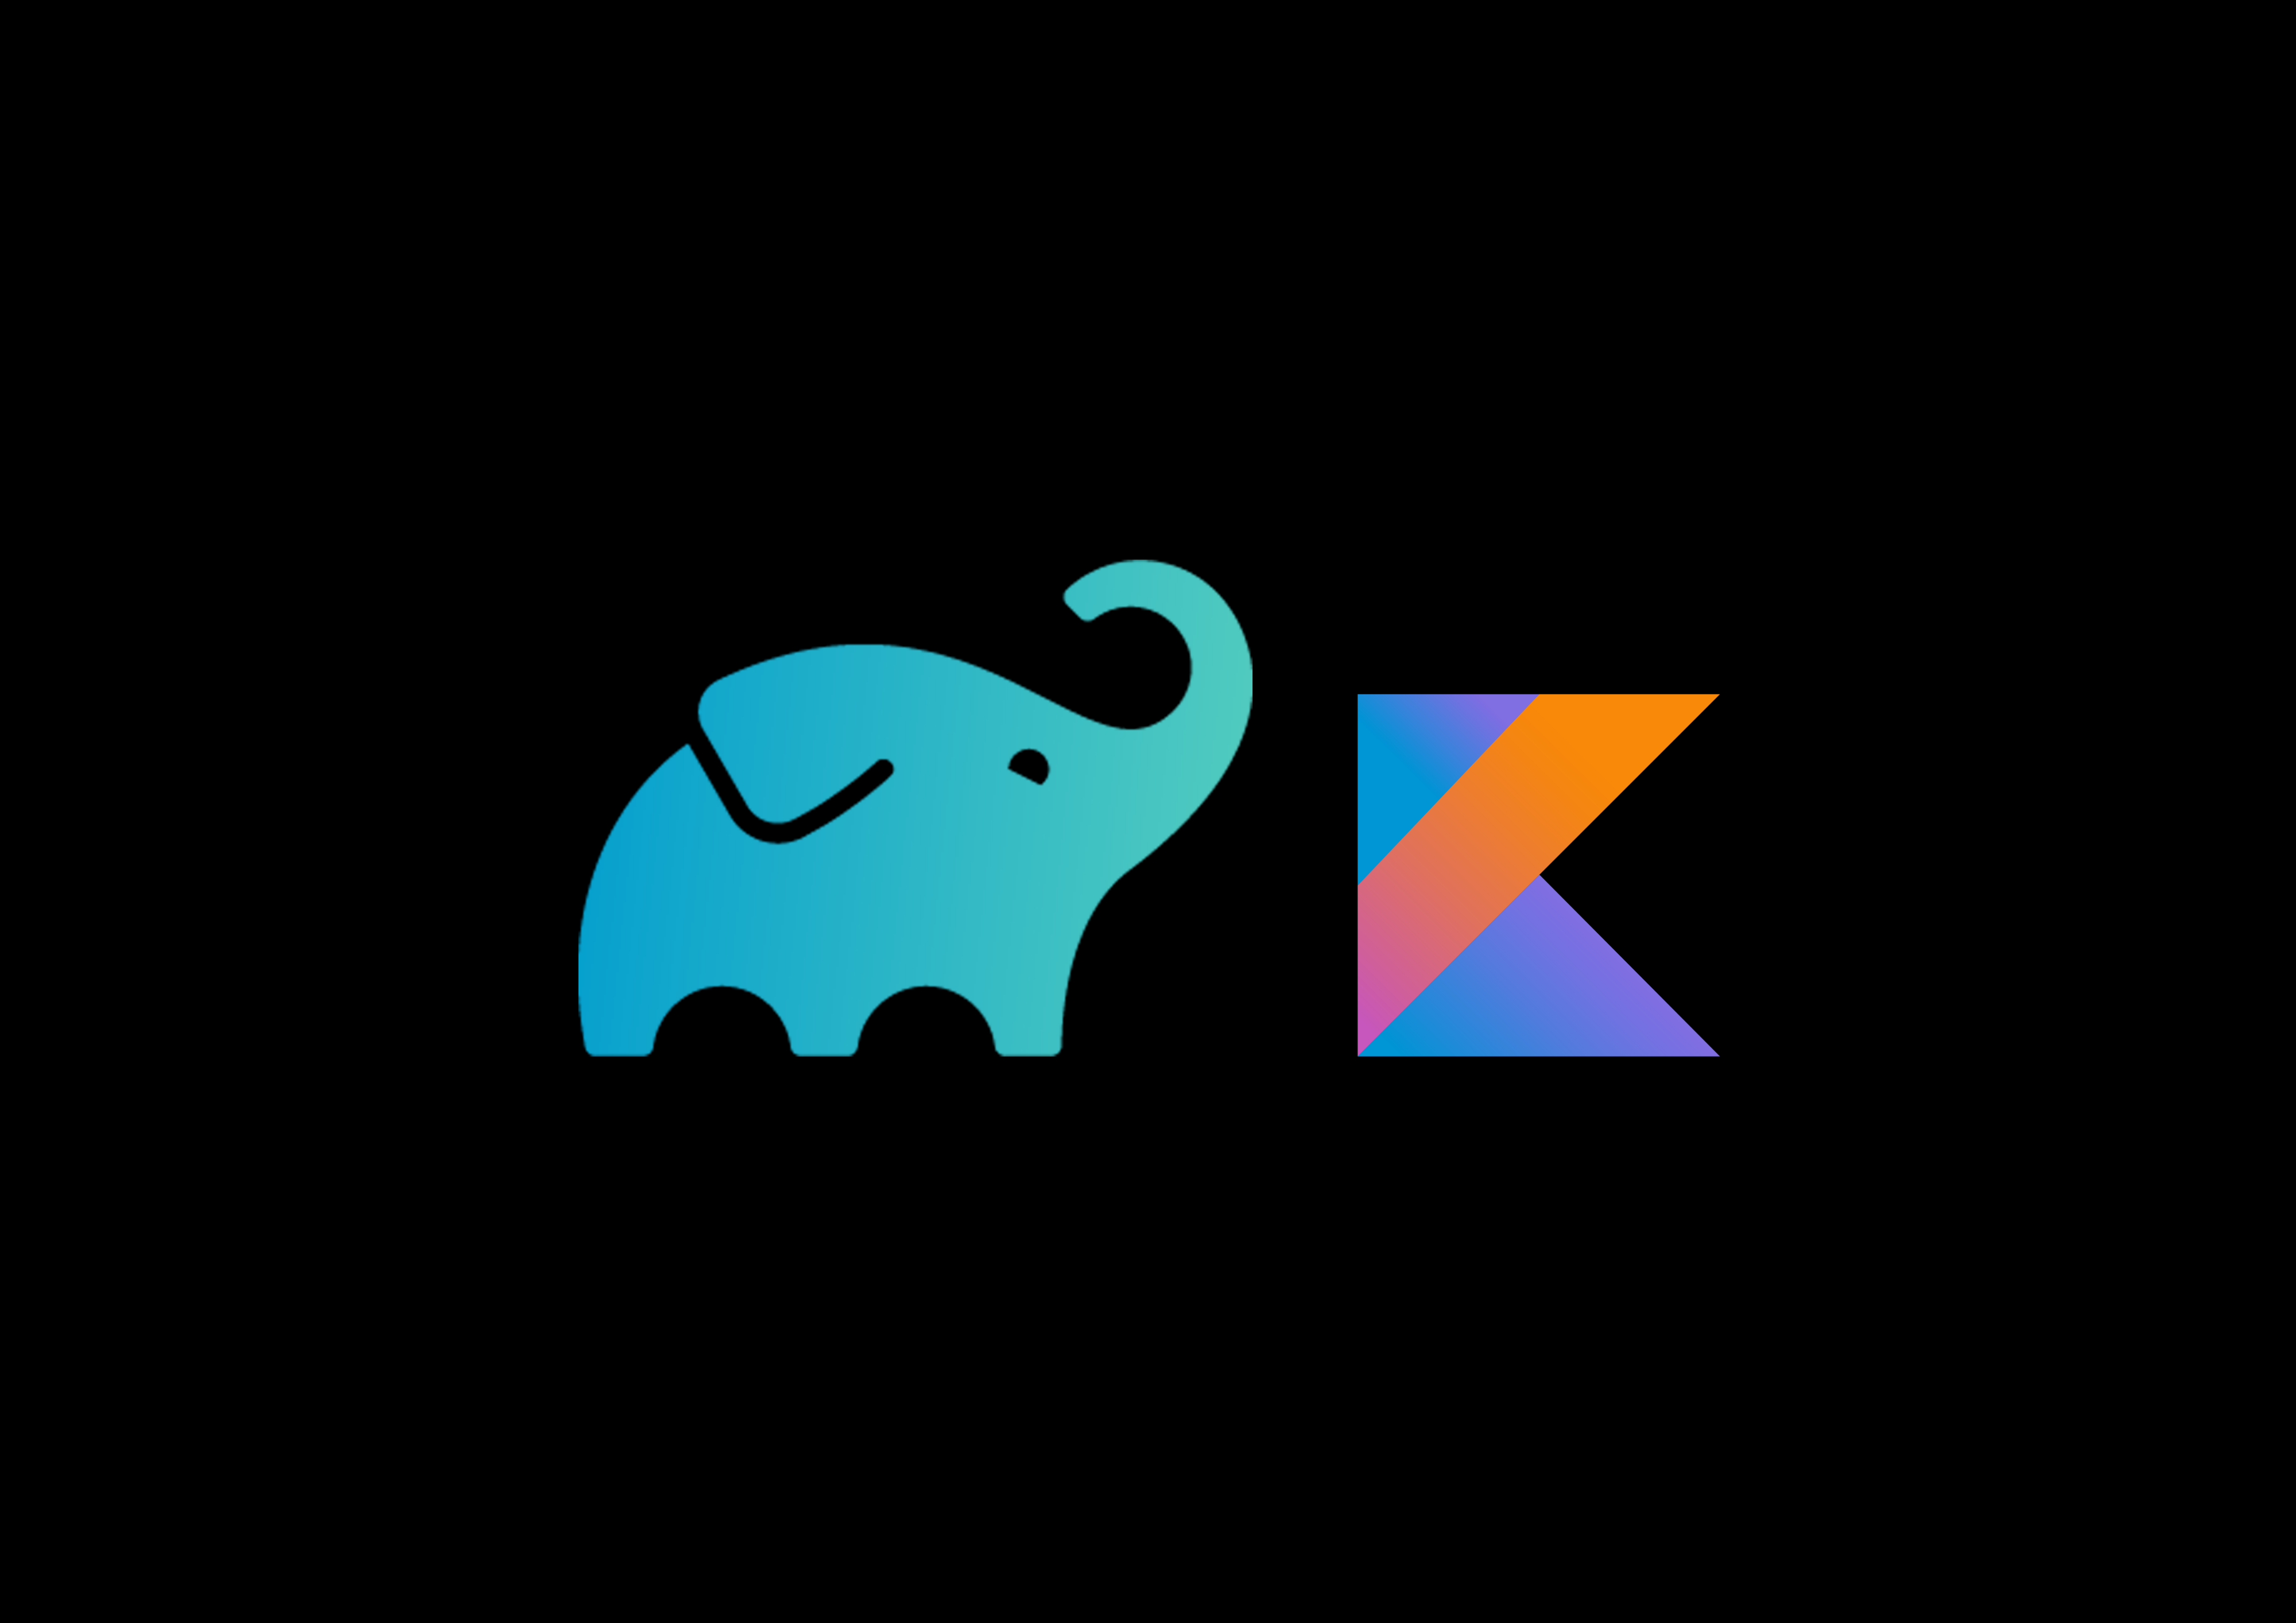 Gradle and Kotlin